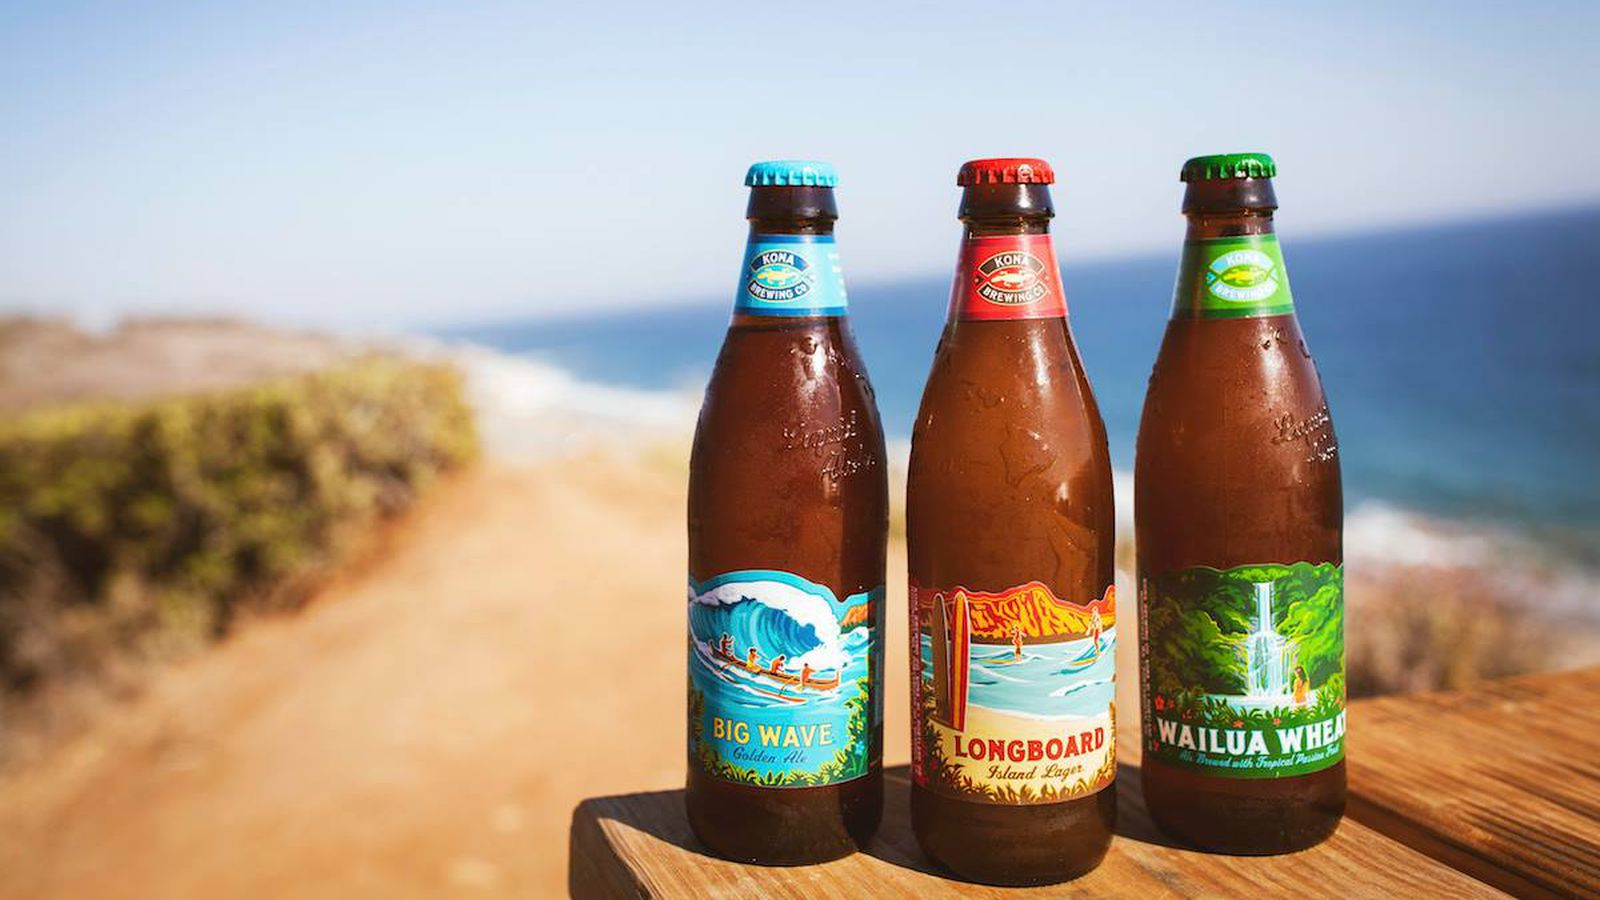 Kona Brewing Co Sued For Not Actually Brewing Its Beer In